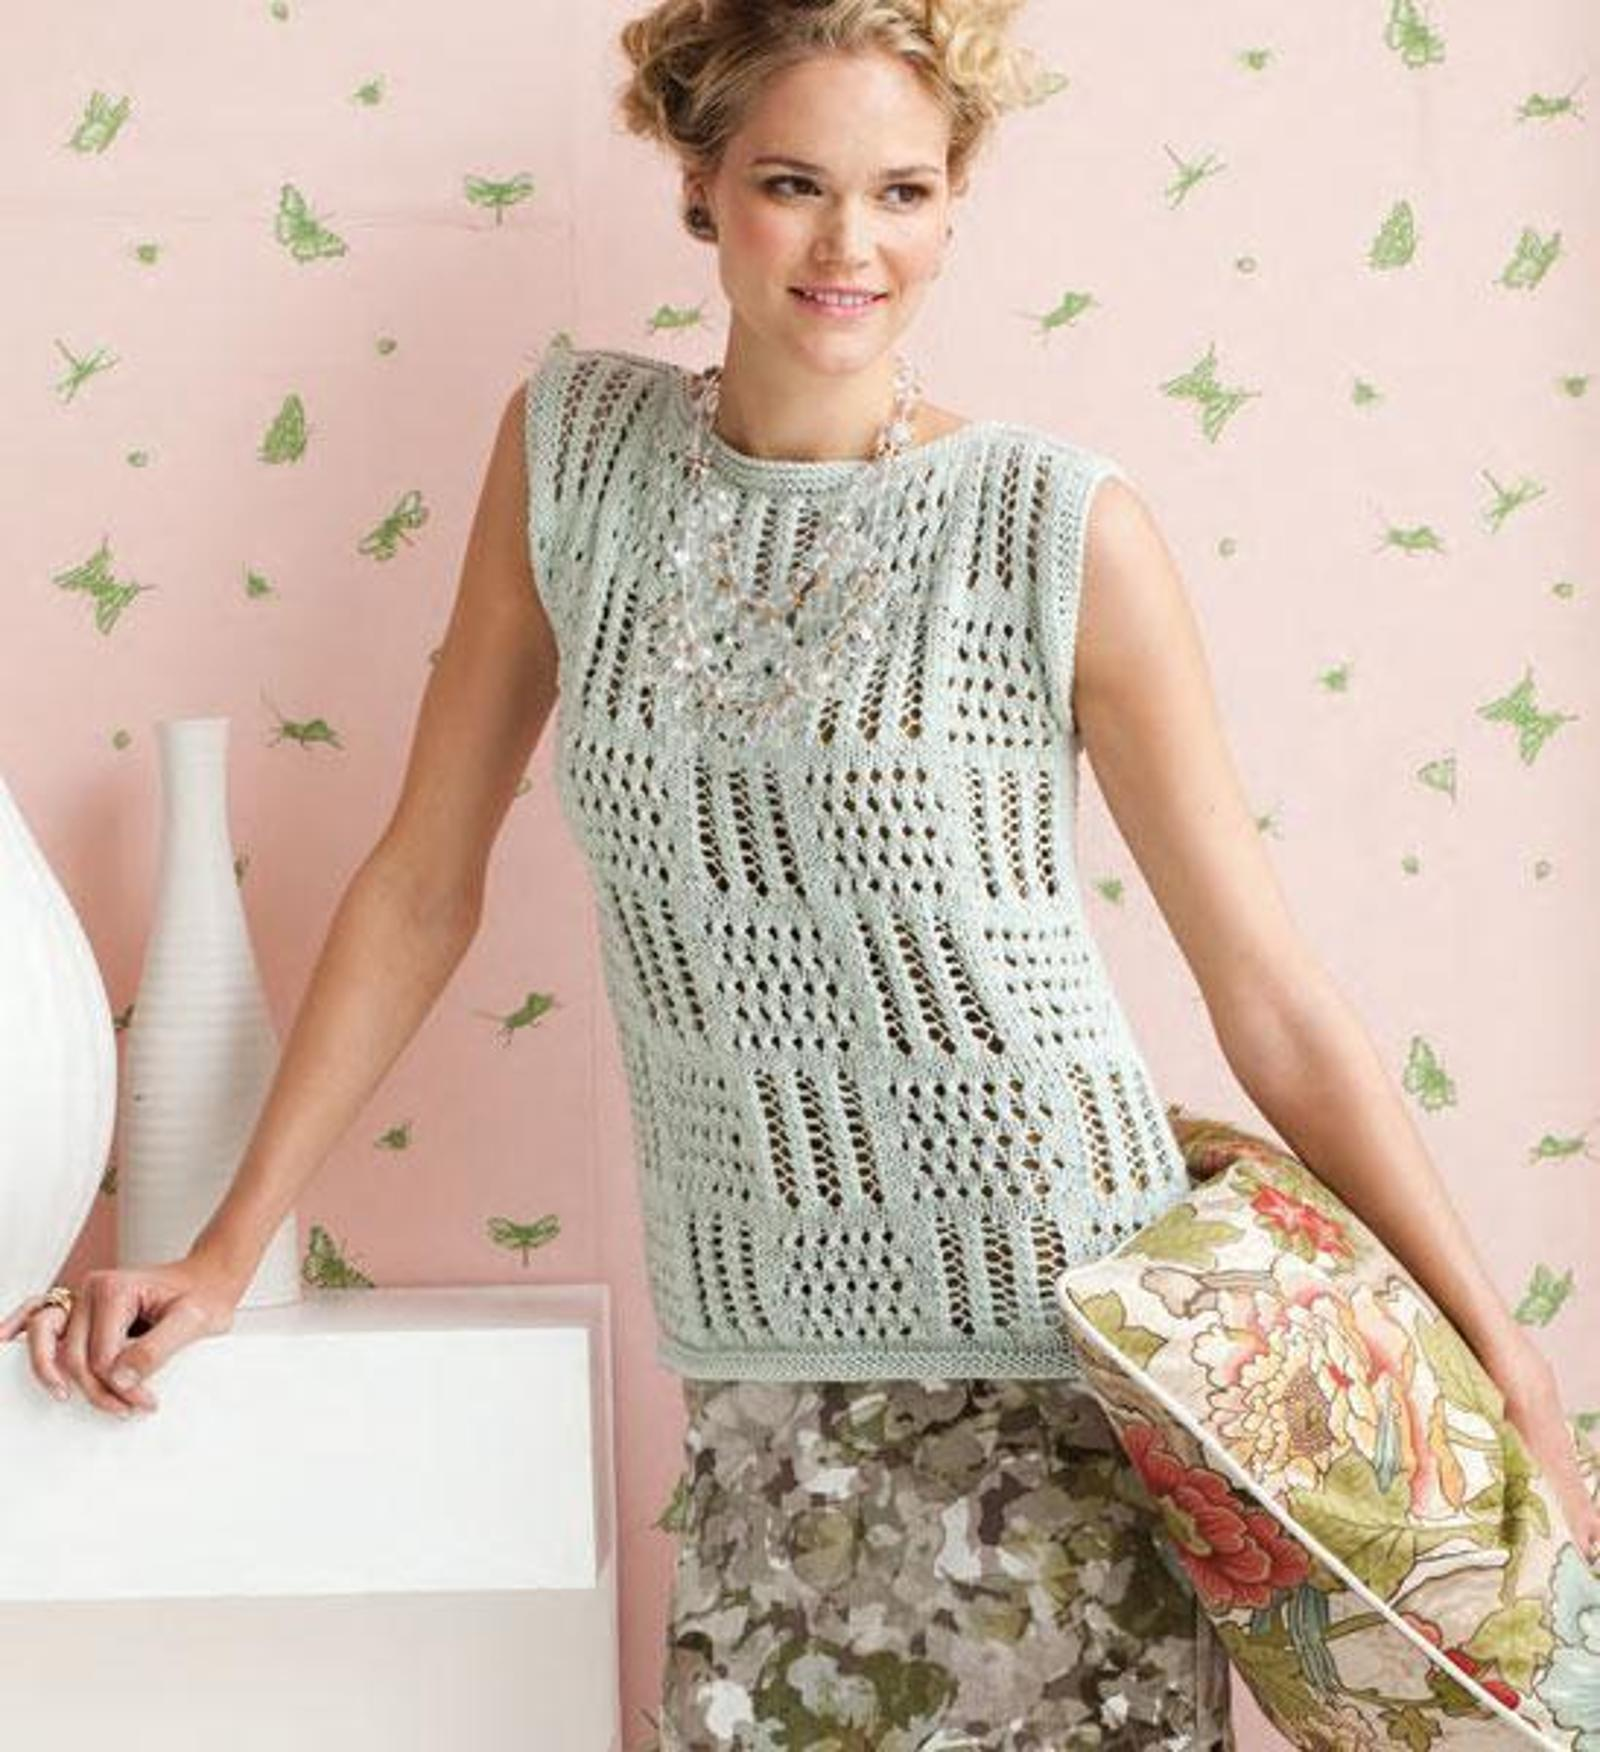 Patchwork Lace Top Knitting Pattern